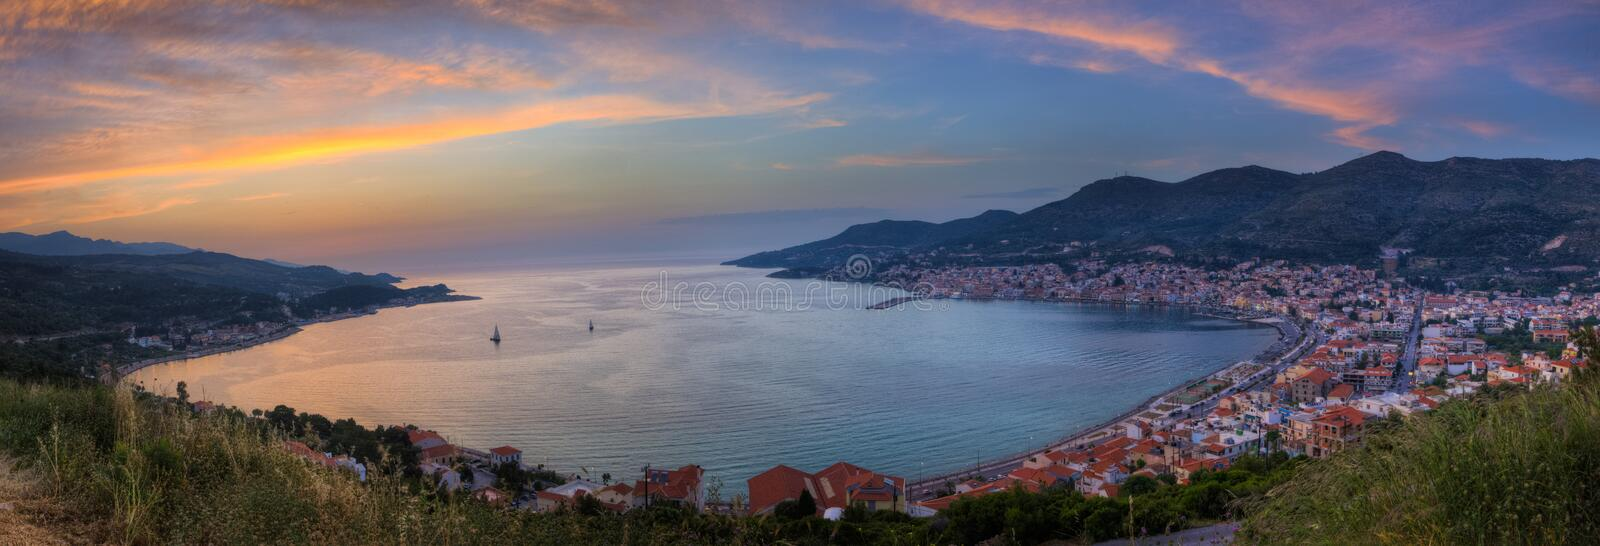 Panoramic Sunset View royalty free stock photography